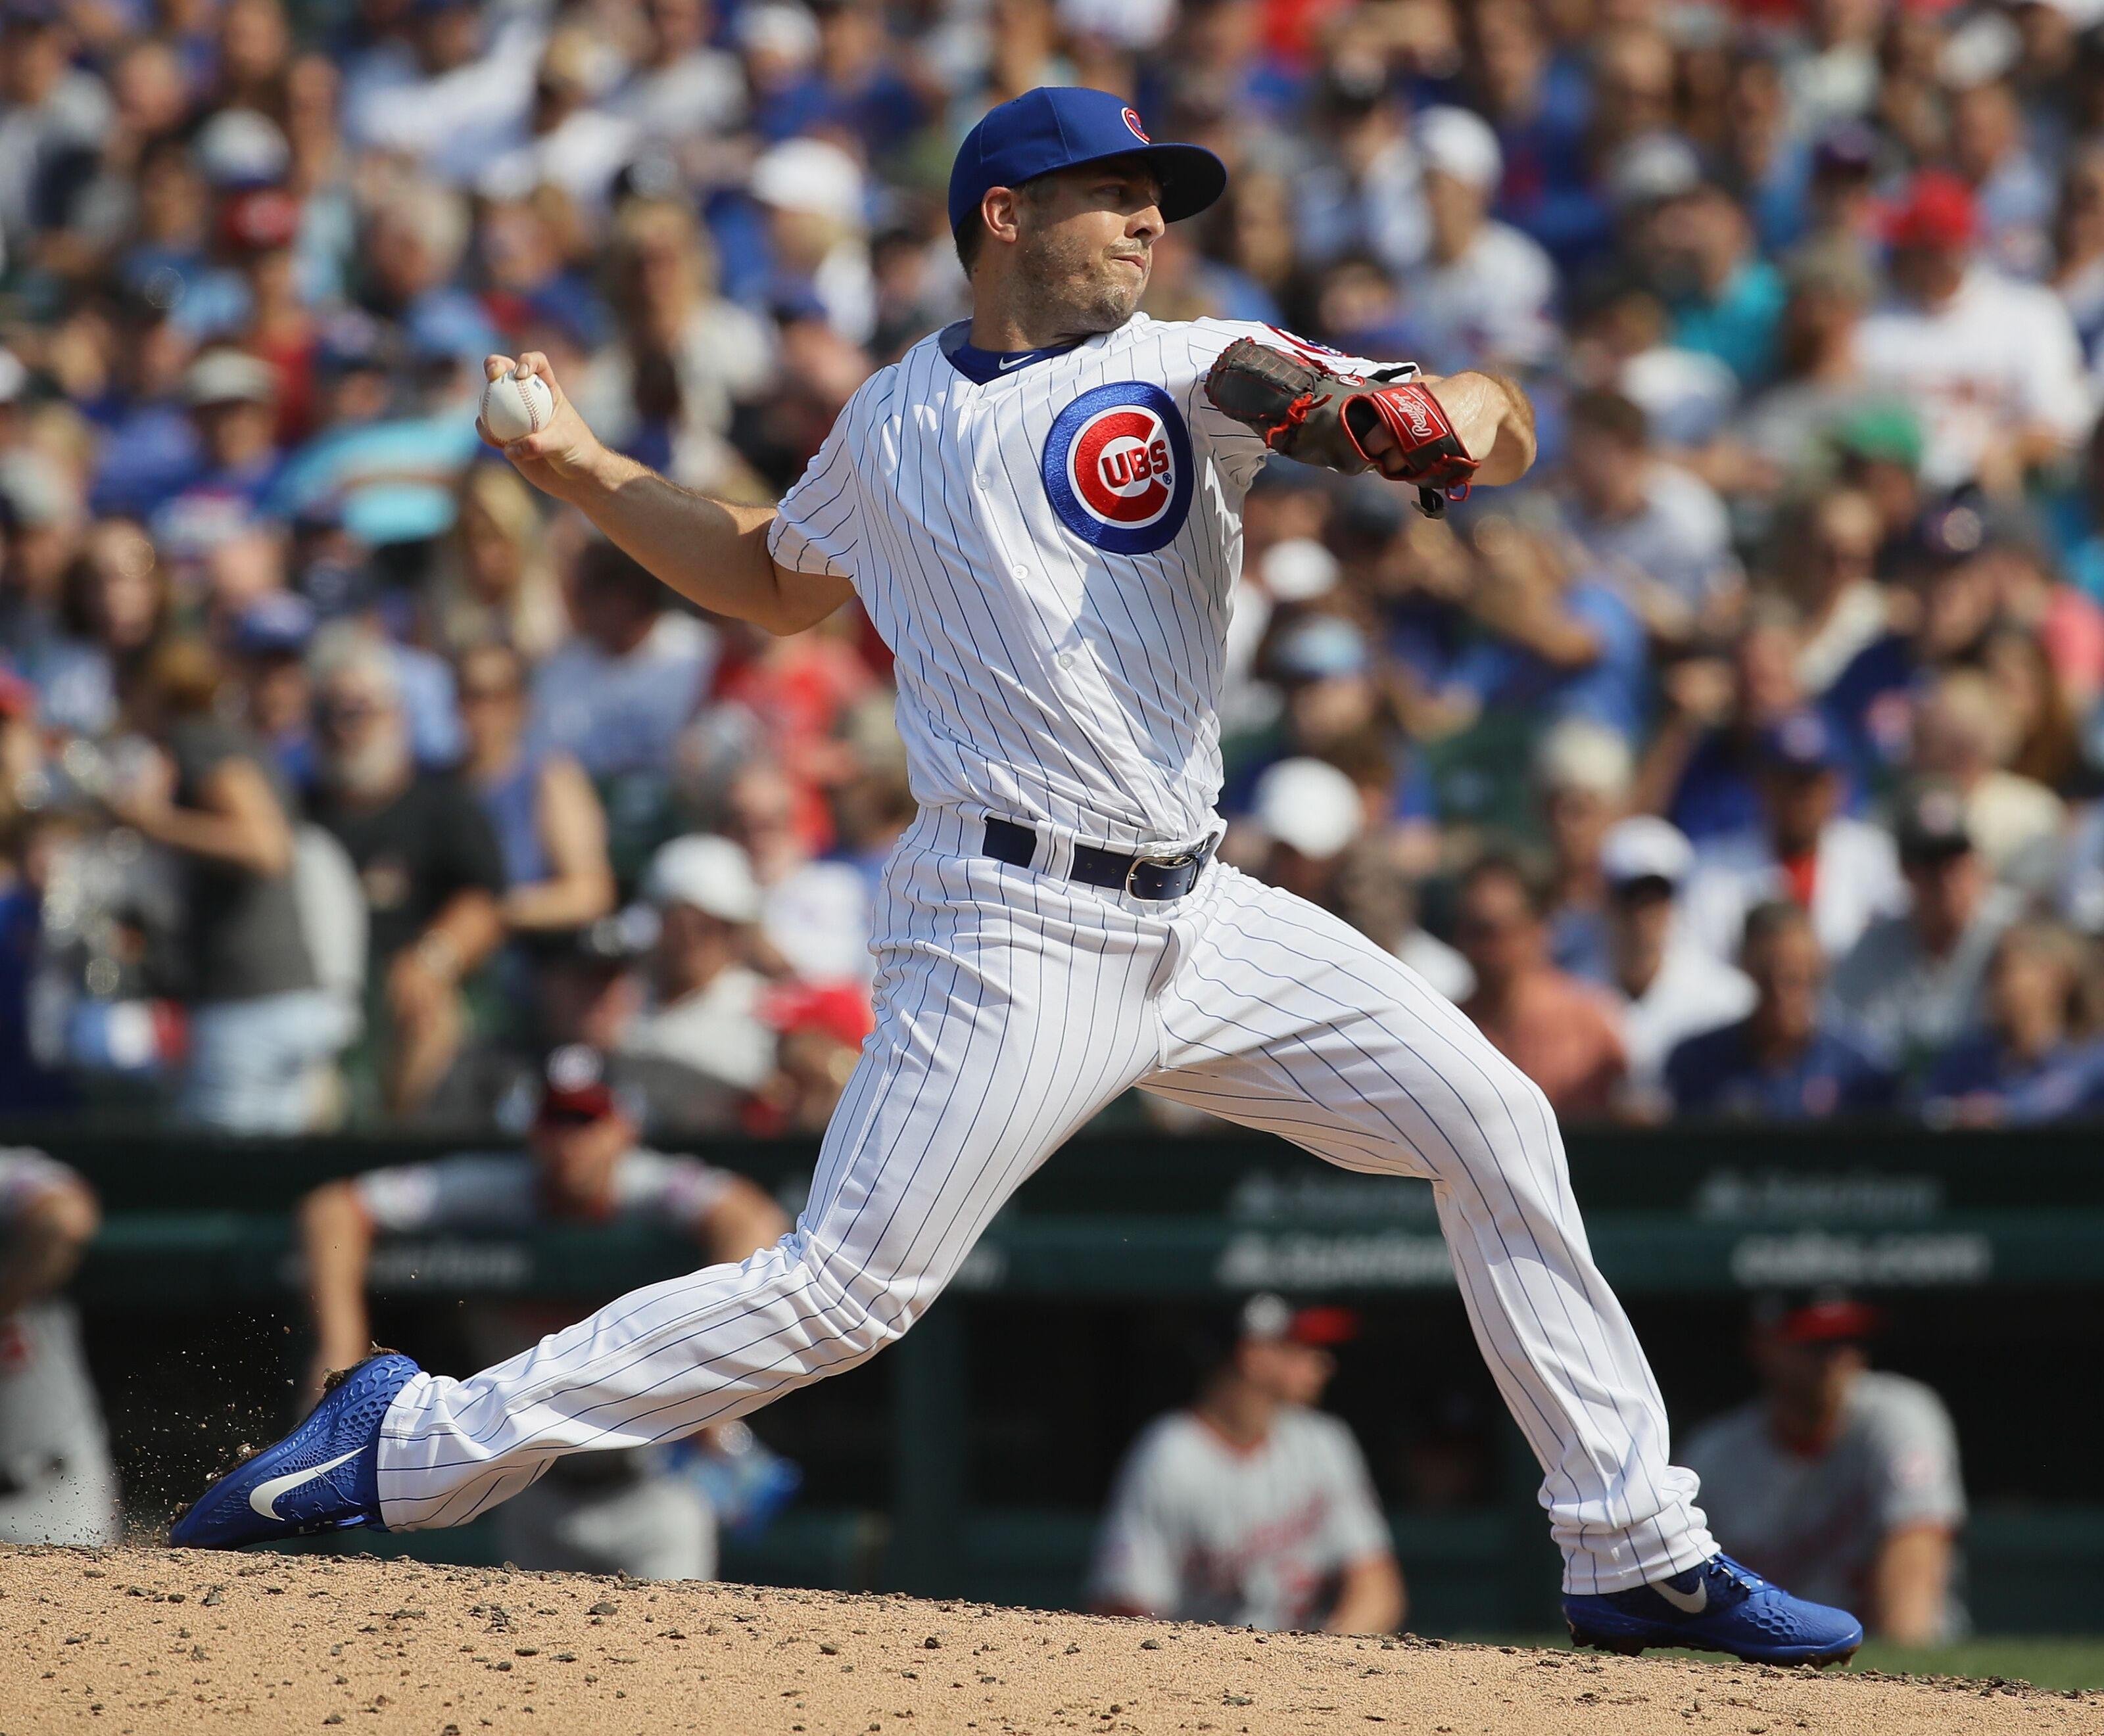 Chicago Cubs: Brandon Kintzler picks up player option for 2019 season